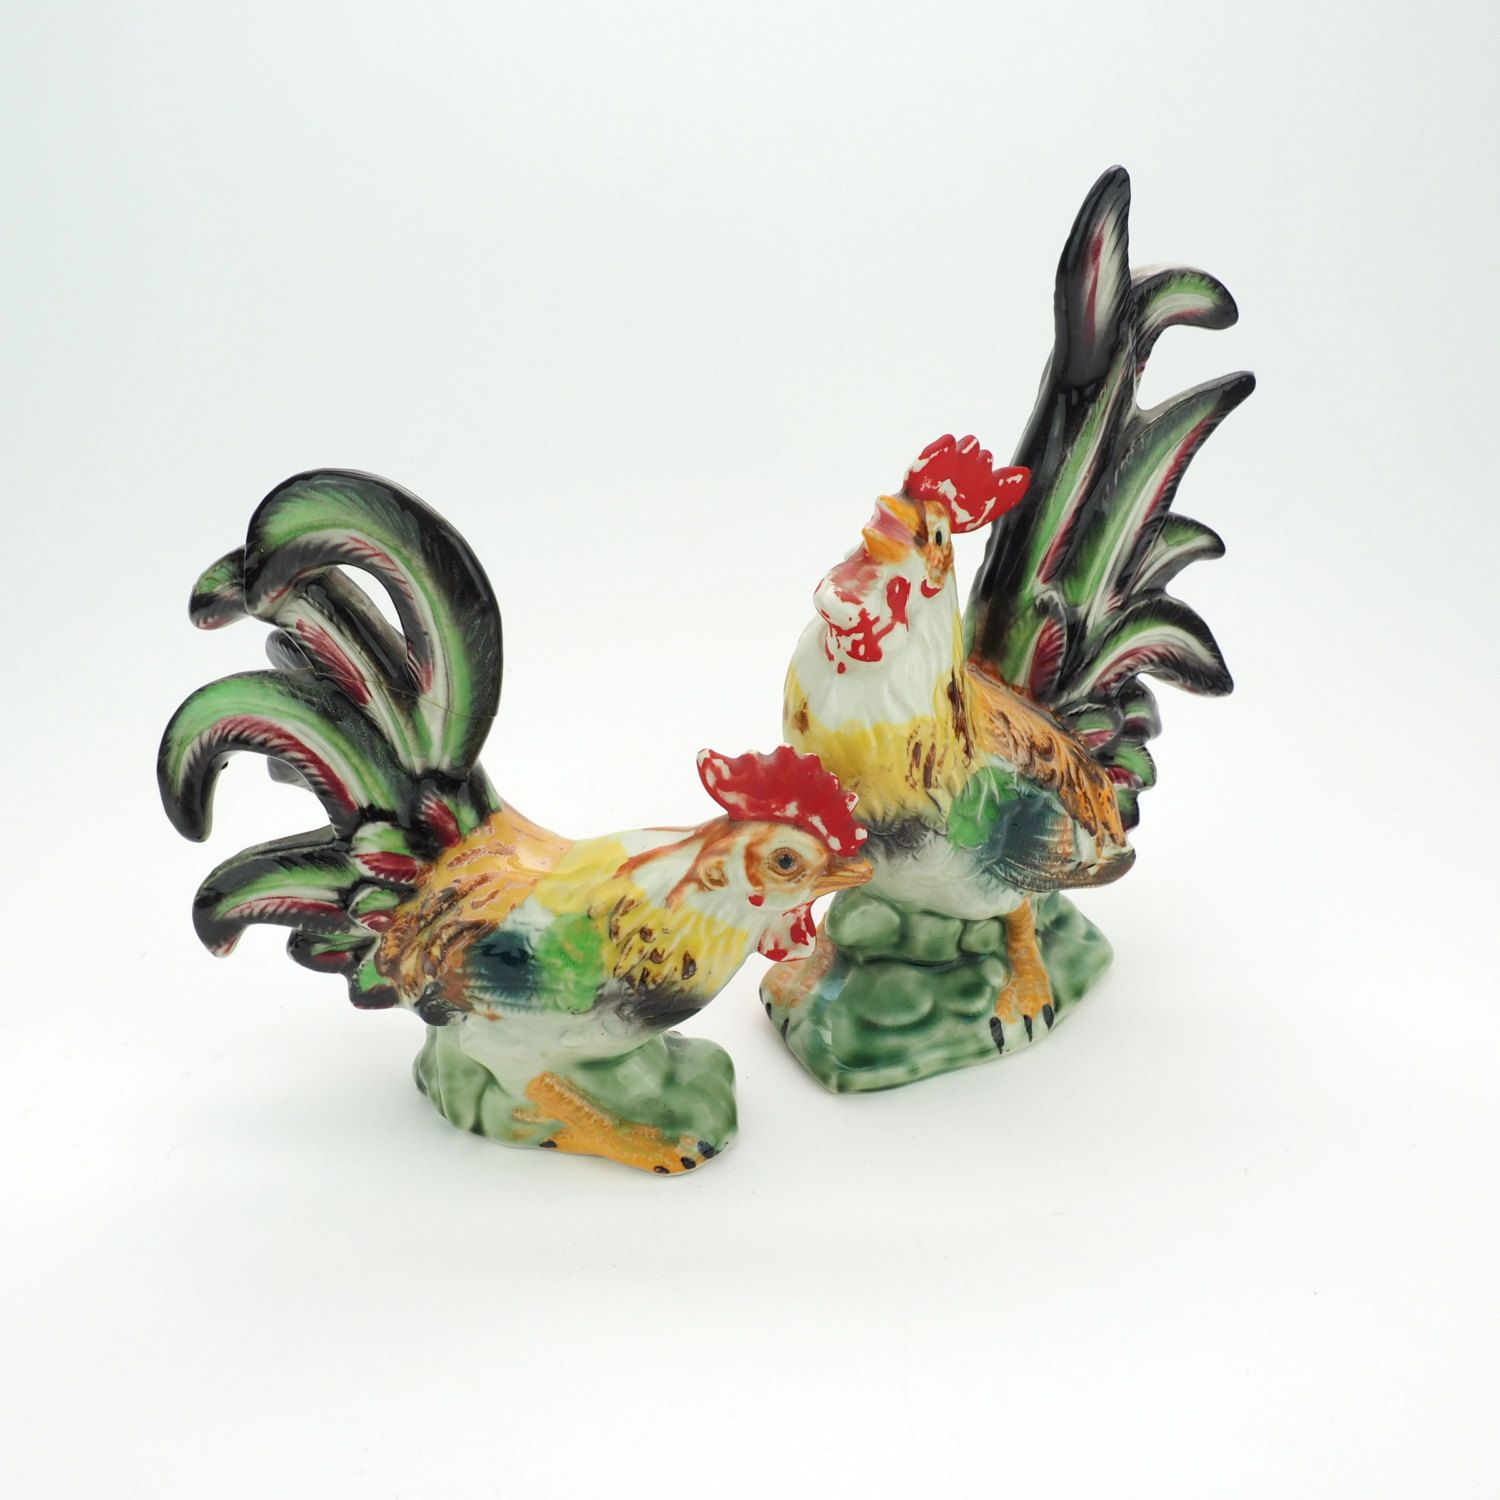 Ceramic Rooster and Hen, Hand Painted Chickens with Colorful Tails ...